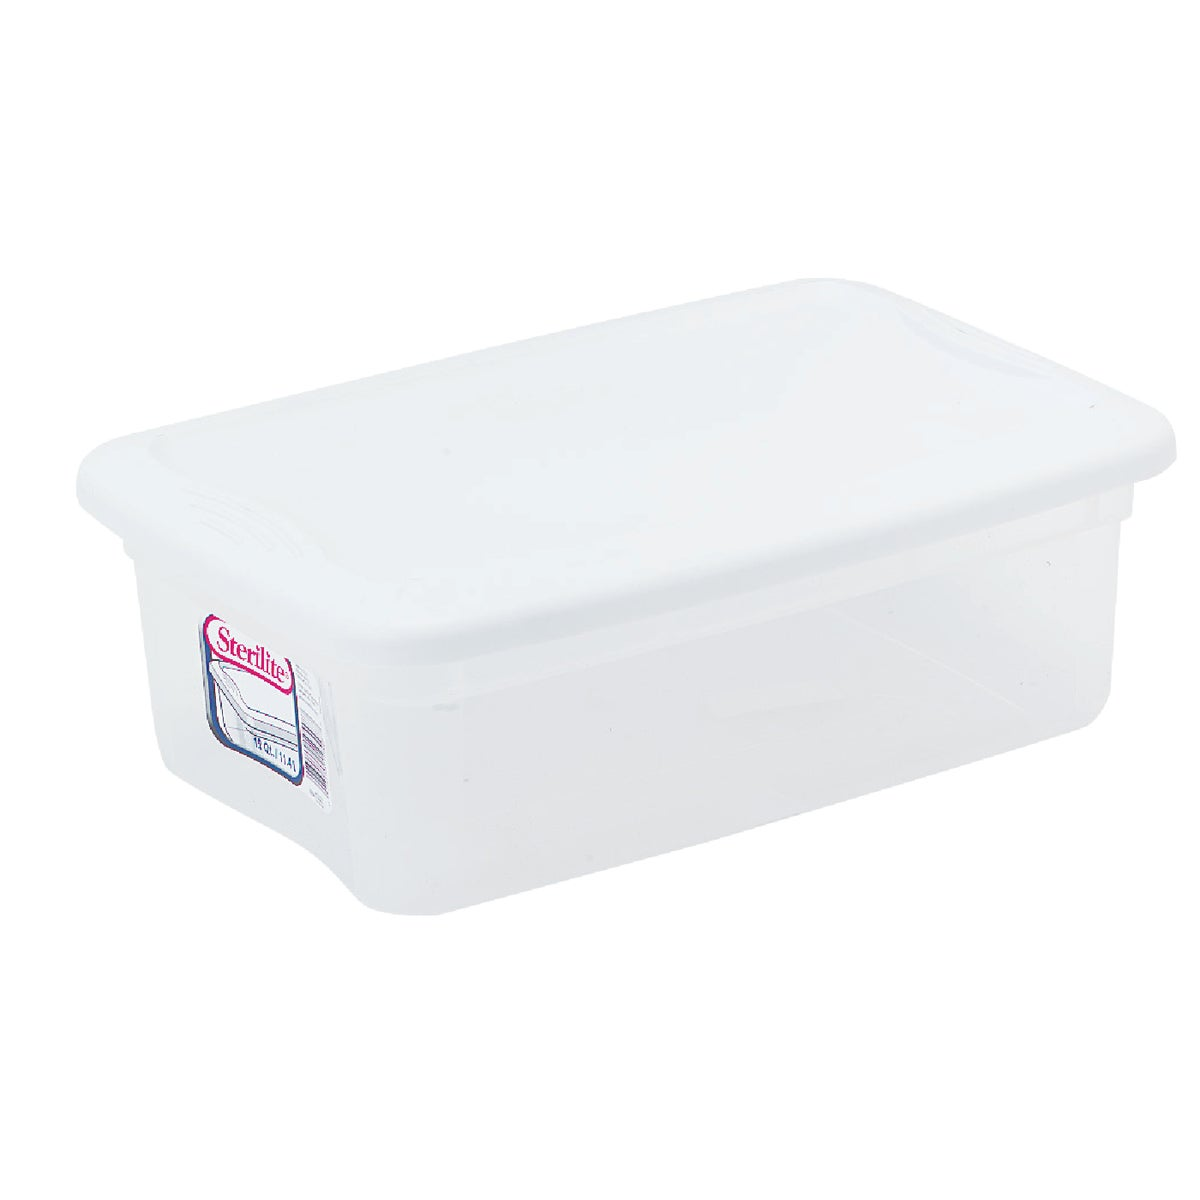 16 QUART STORAGE BOX - 16448012 by Sterilite Corp